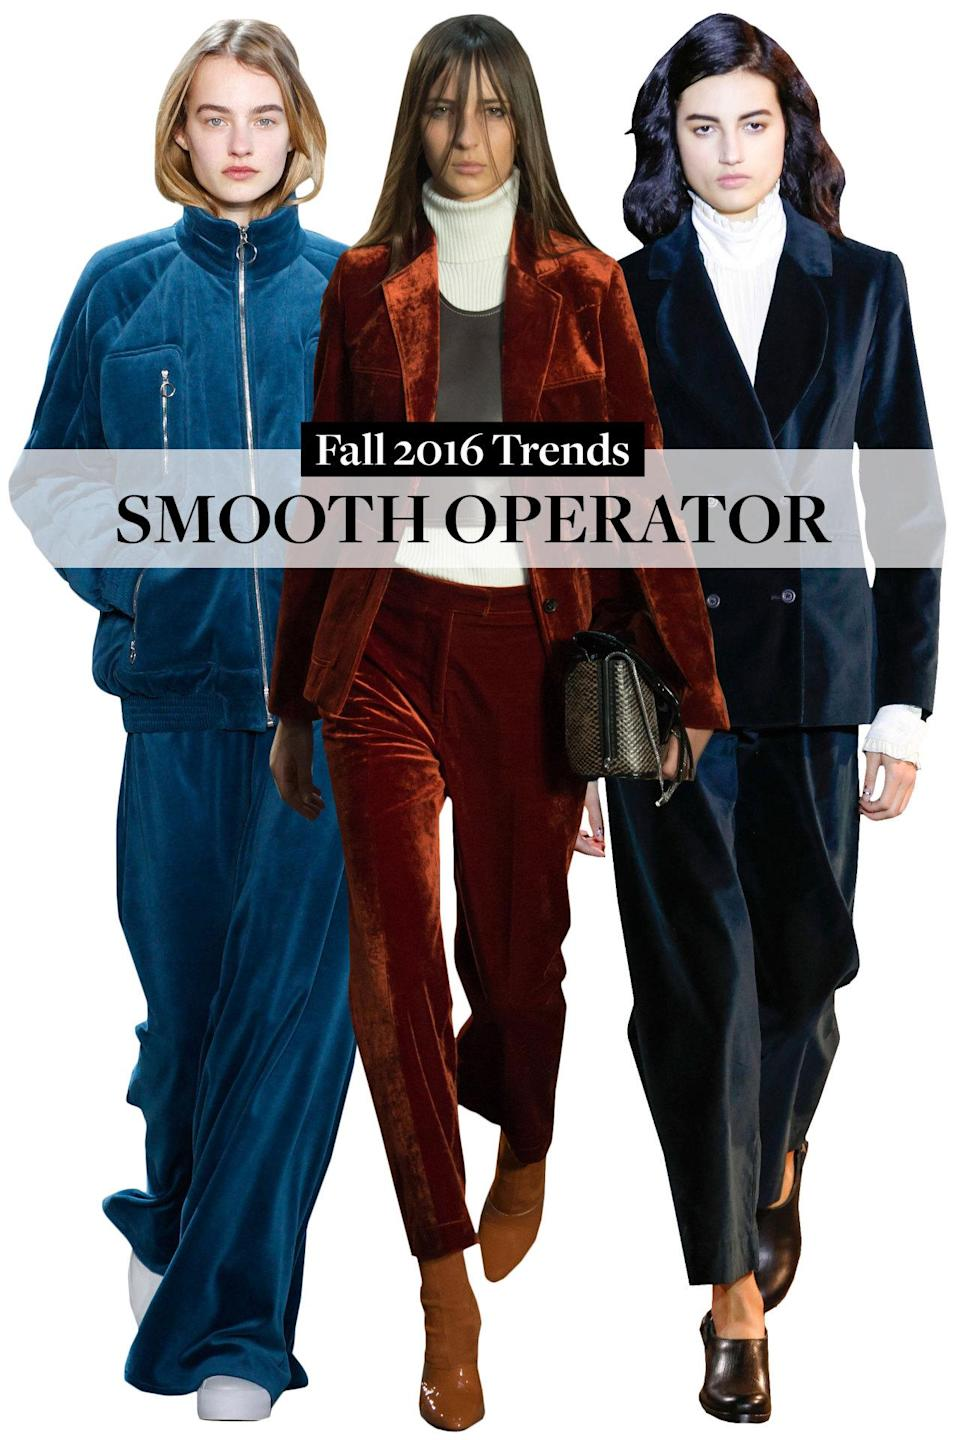 <p>Velvets suits were standout, including a sexy 60s-style green-velvet one from Frame Denim and a blue-velvet, wide-pants tracksuit from Lacoste.</p>